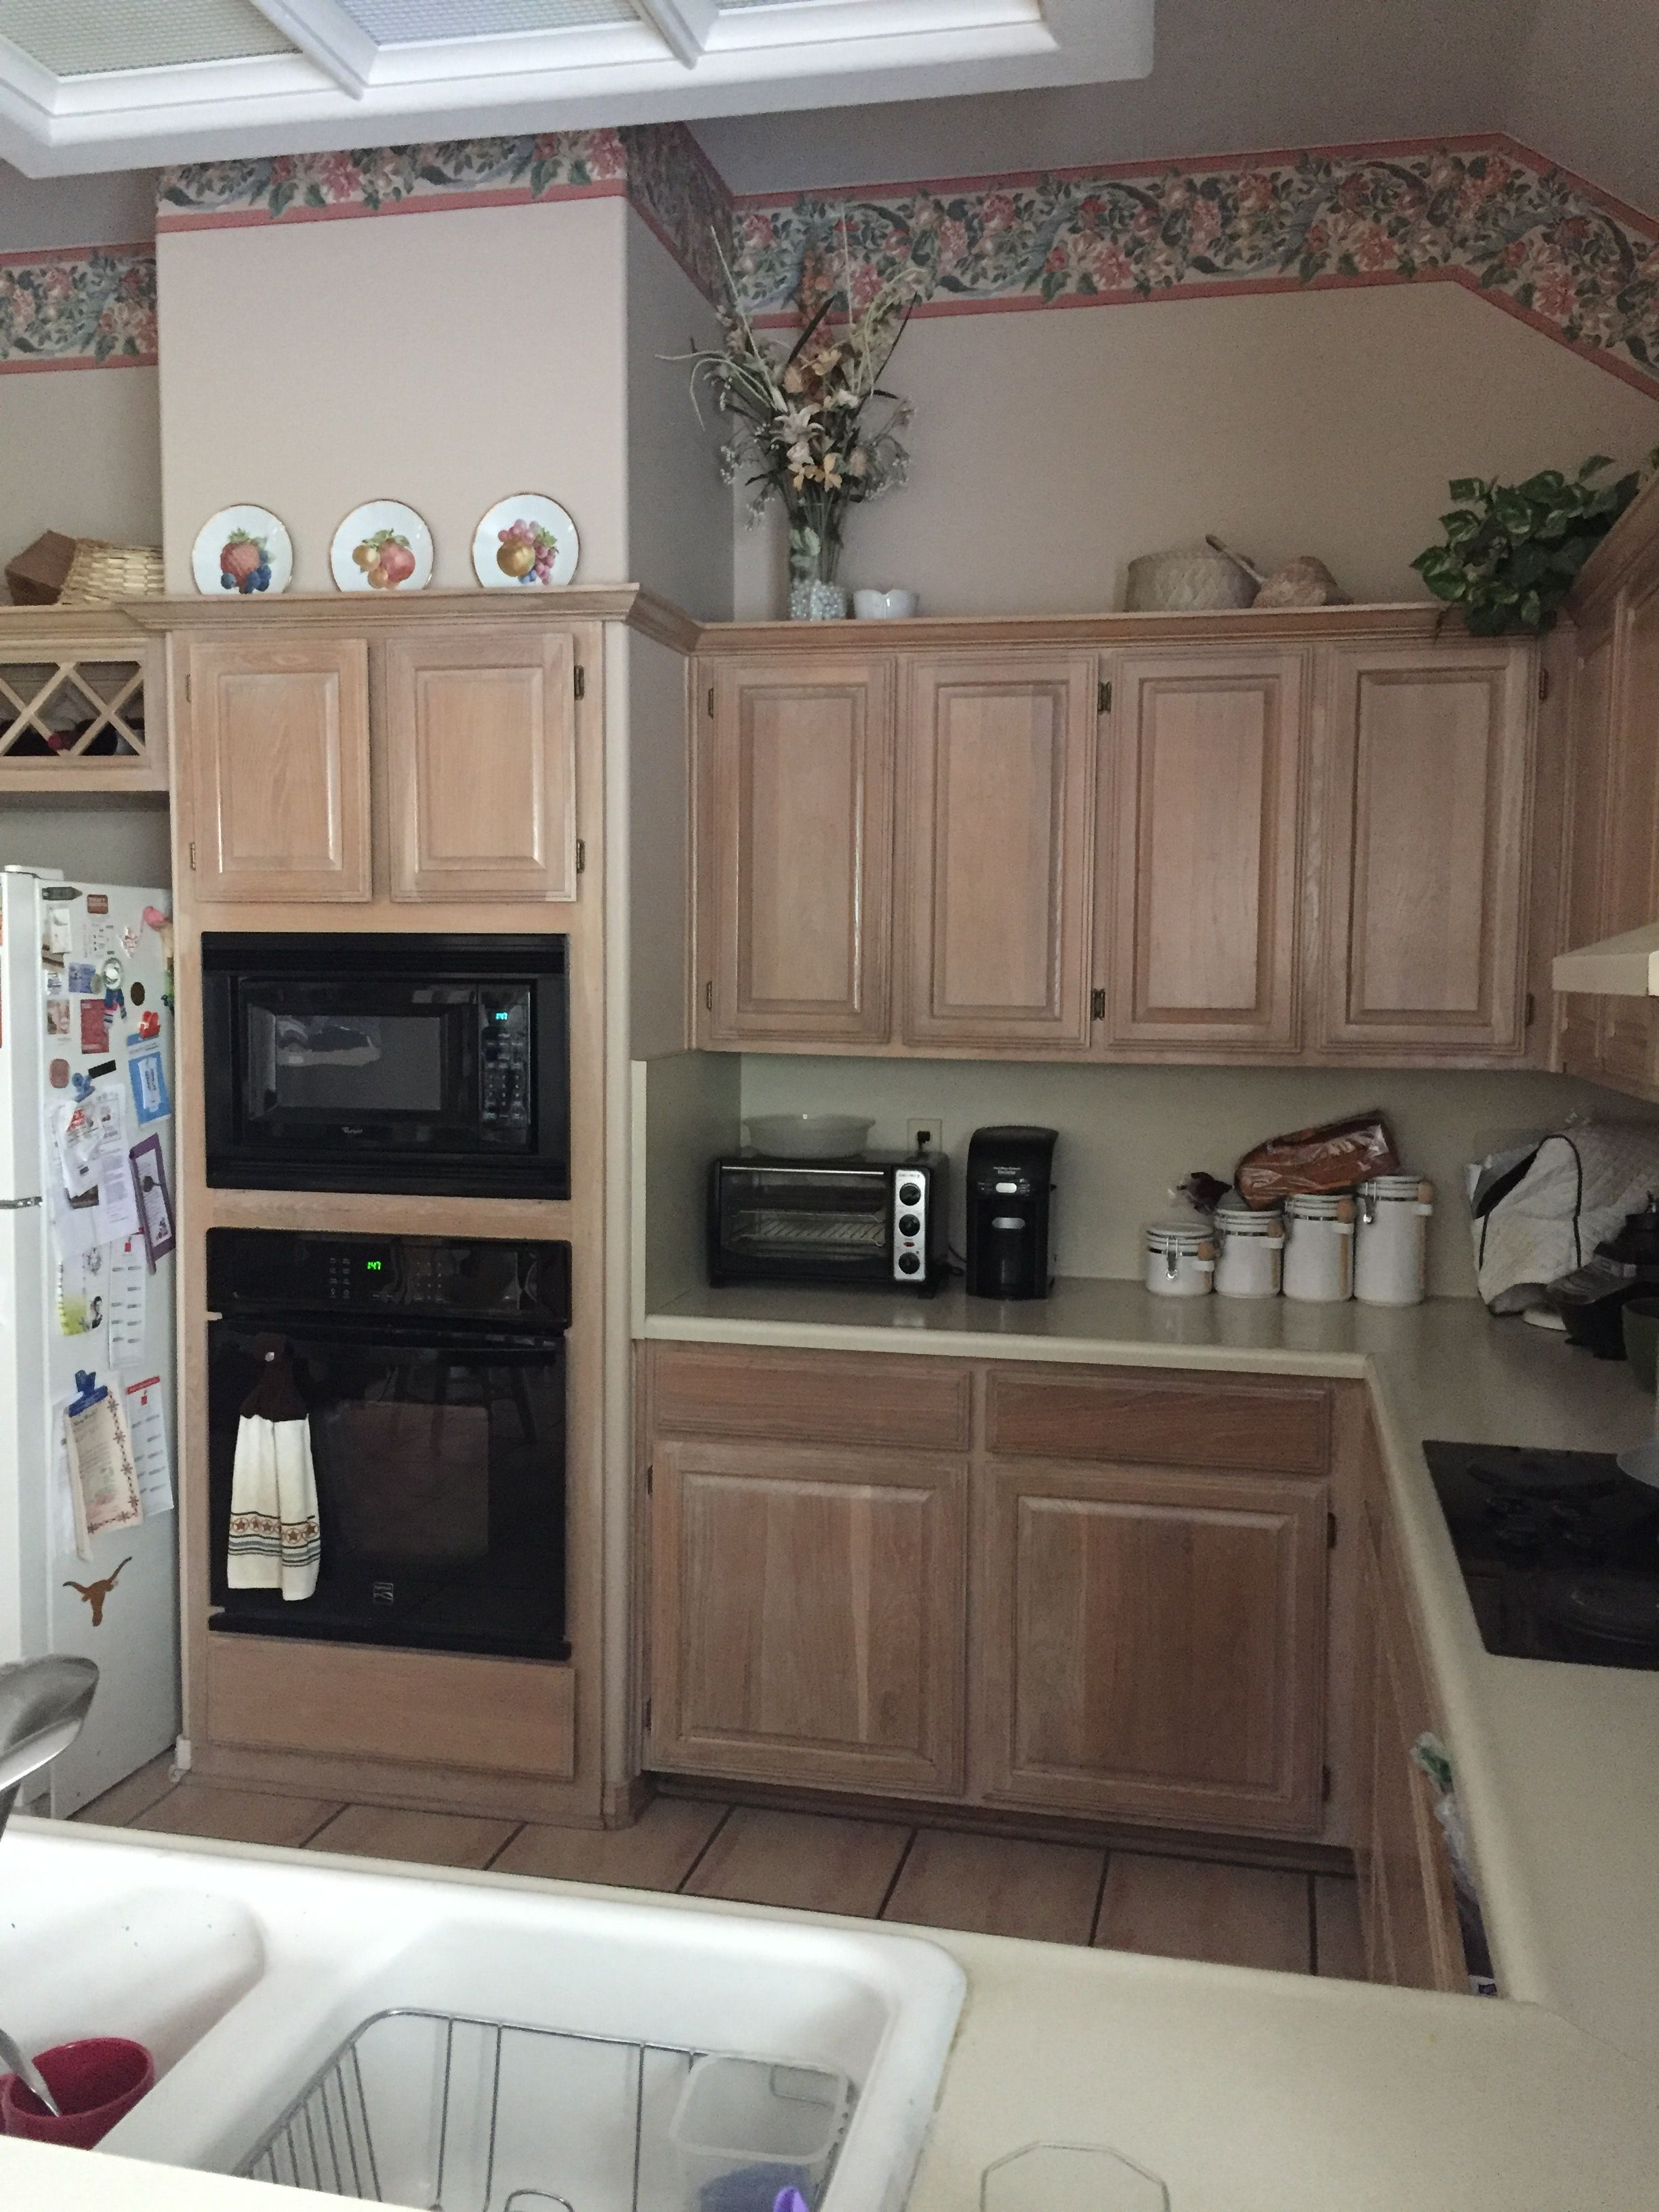 Our Kitchen Pickled Oak Cabinets Have To Go Kitchen Remodel Kitchen Cabinets Oak Cabinets